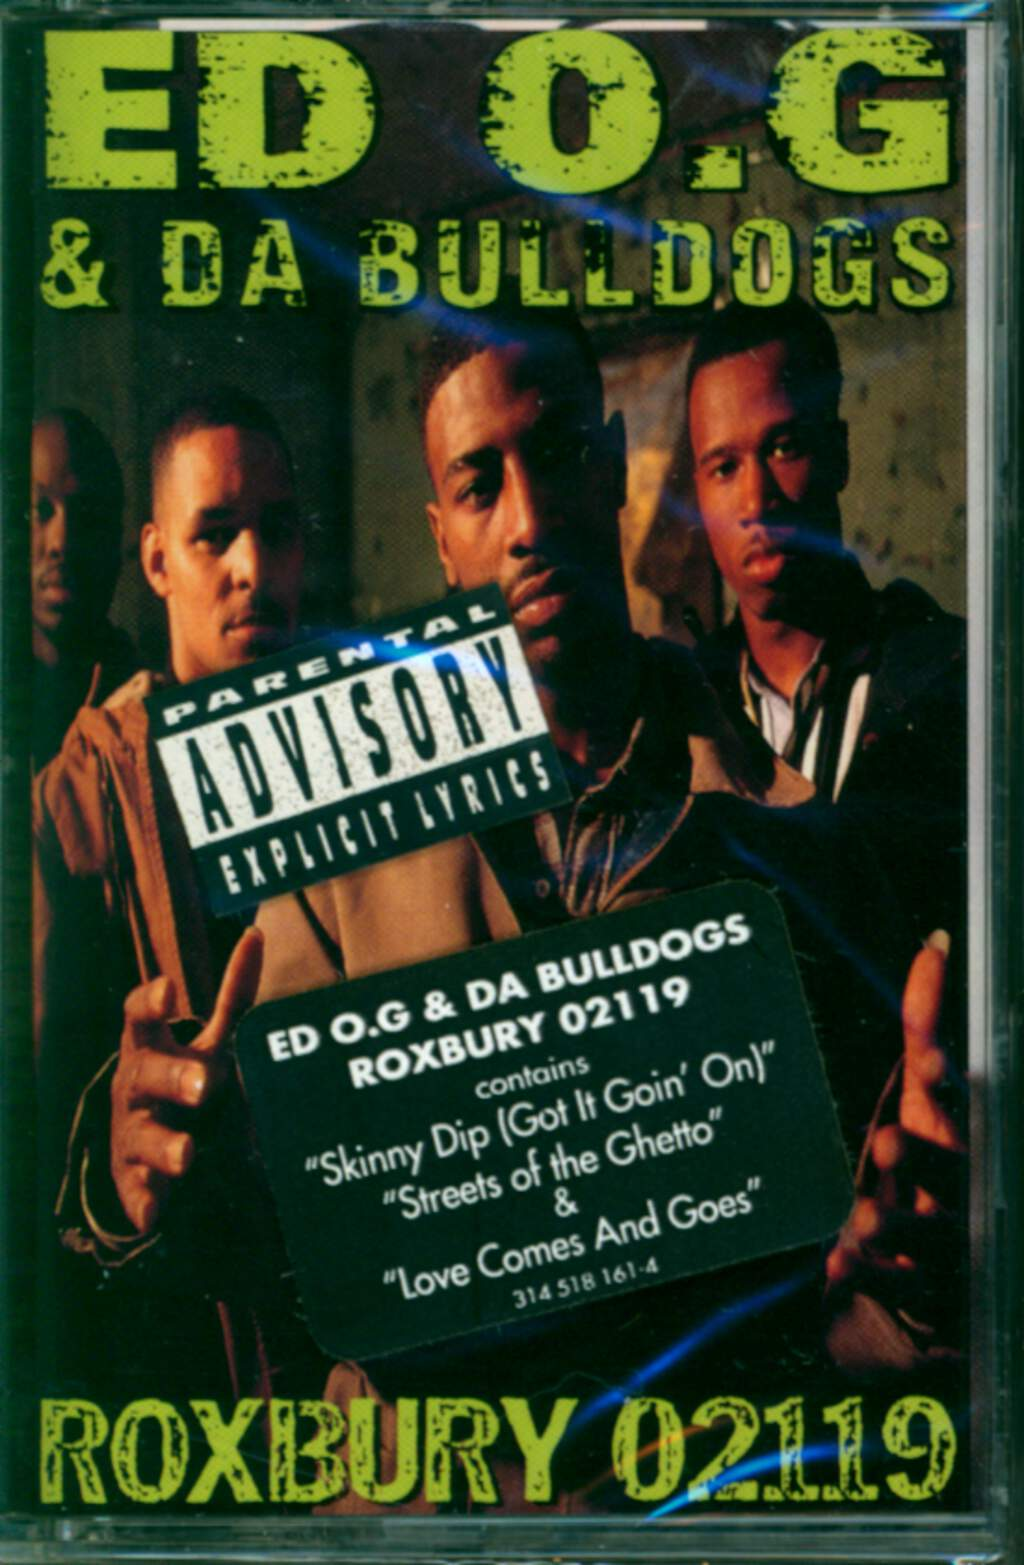 Ed O.G & Da Bulldogs: Roxbury 02119, Tape